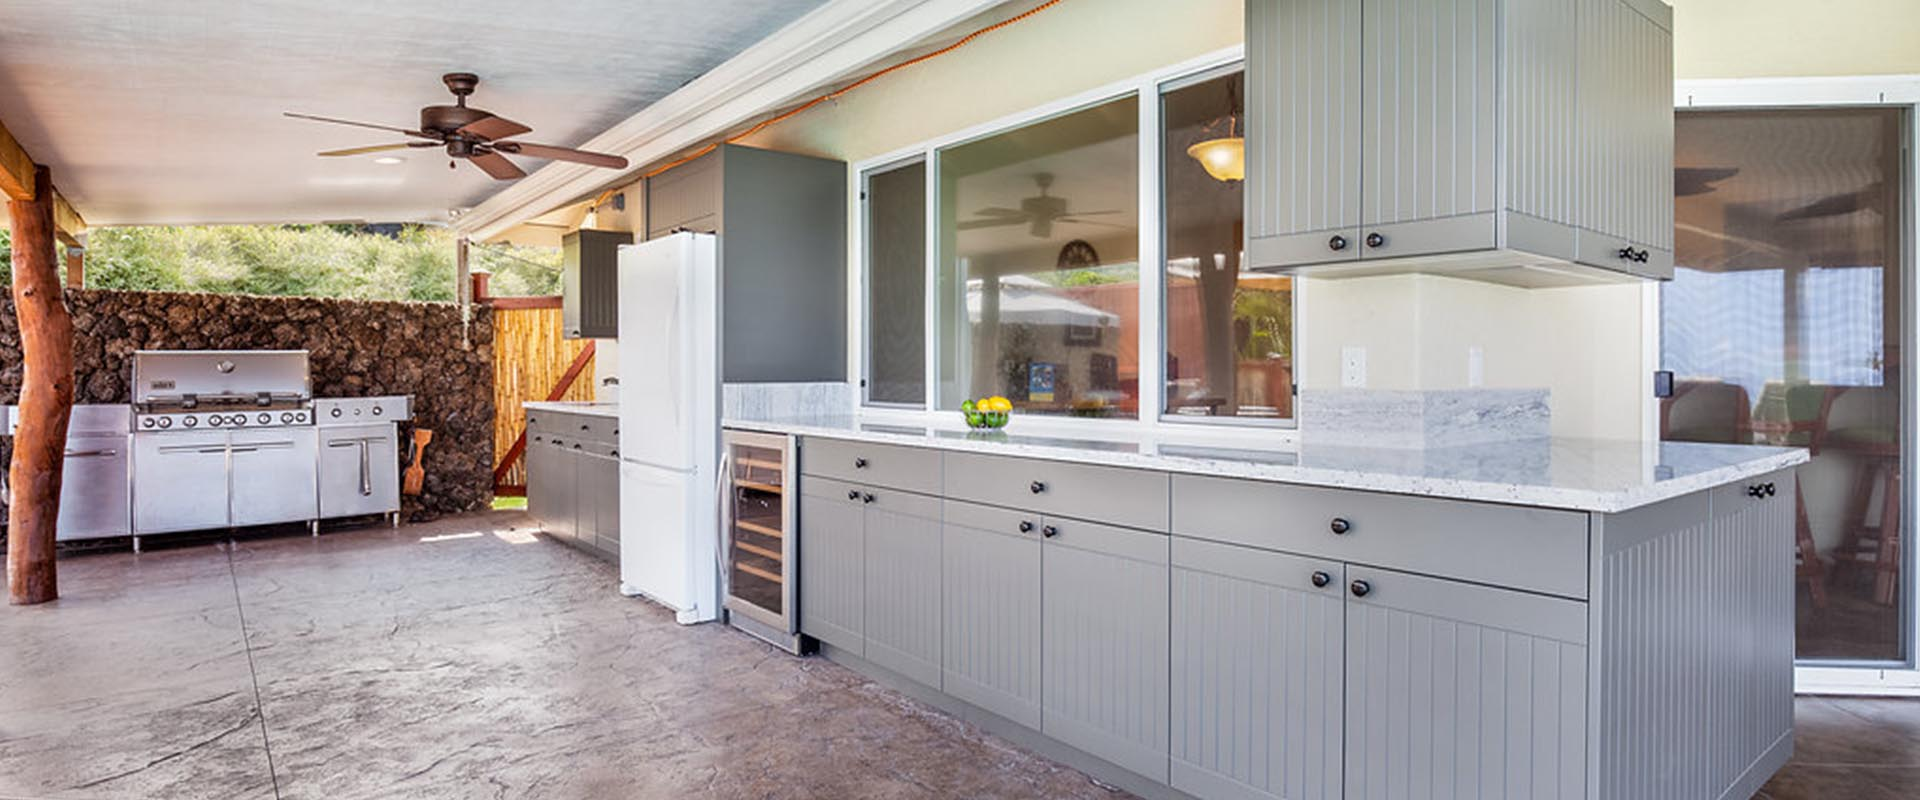 Excellent Hawaii Outdoor Cabinets Open Air Hawaii Open Air Cabinetry Complete Home Design Collection Lindsey Bellcom